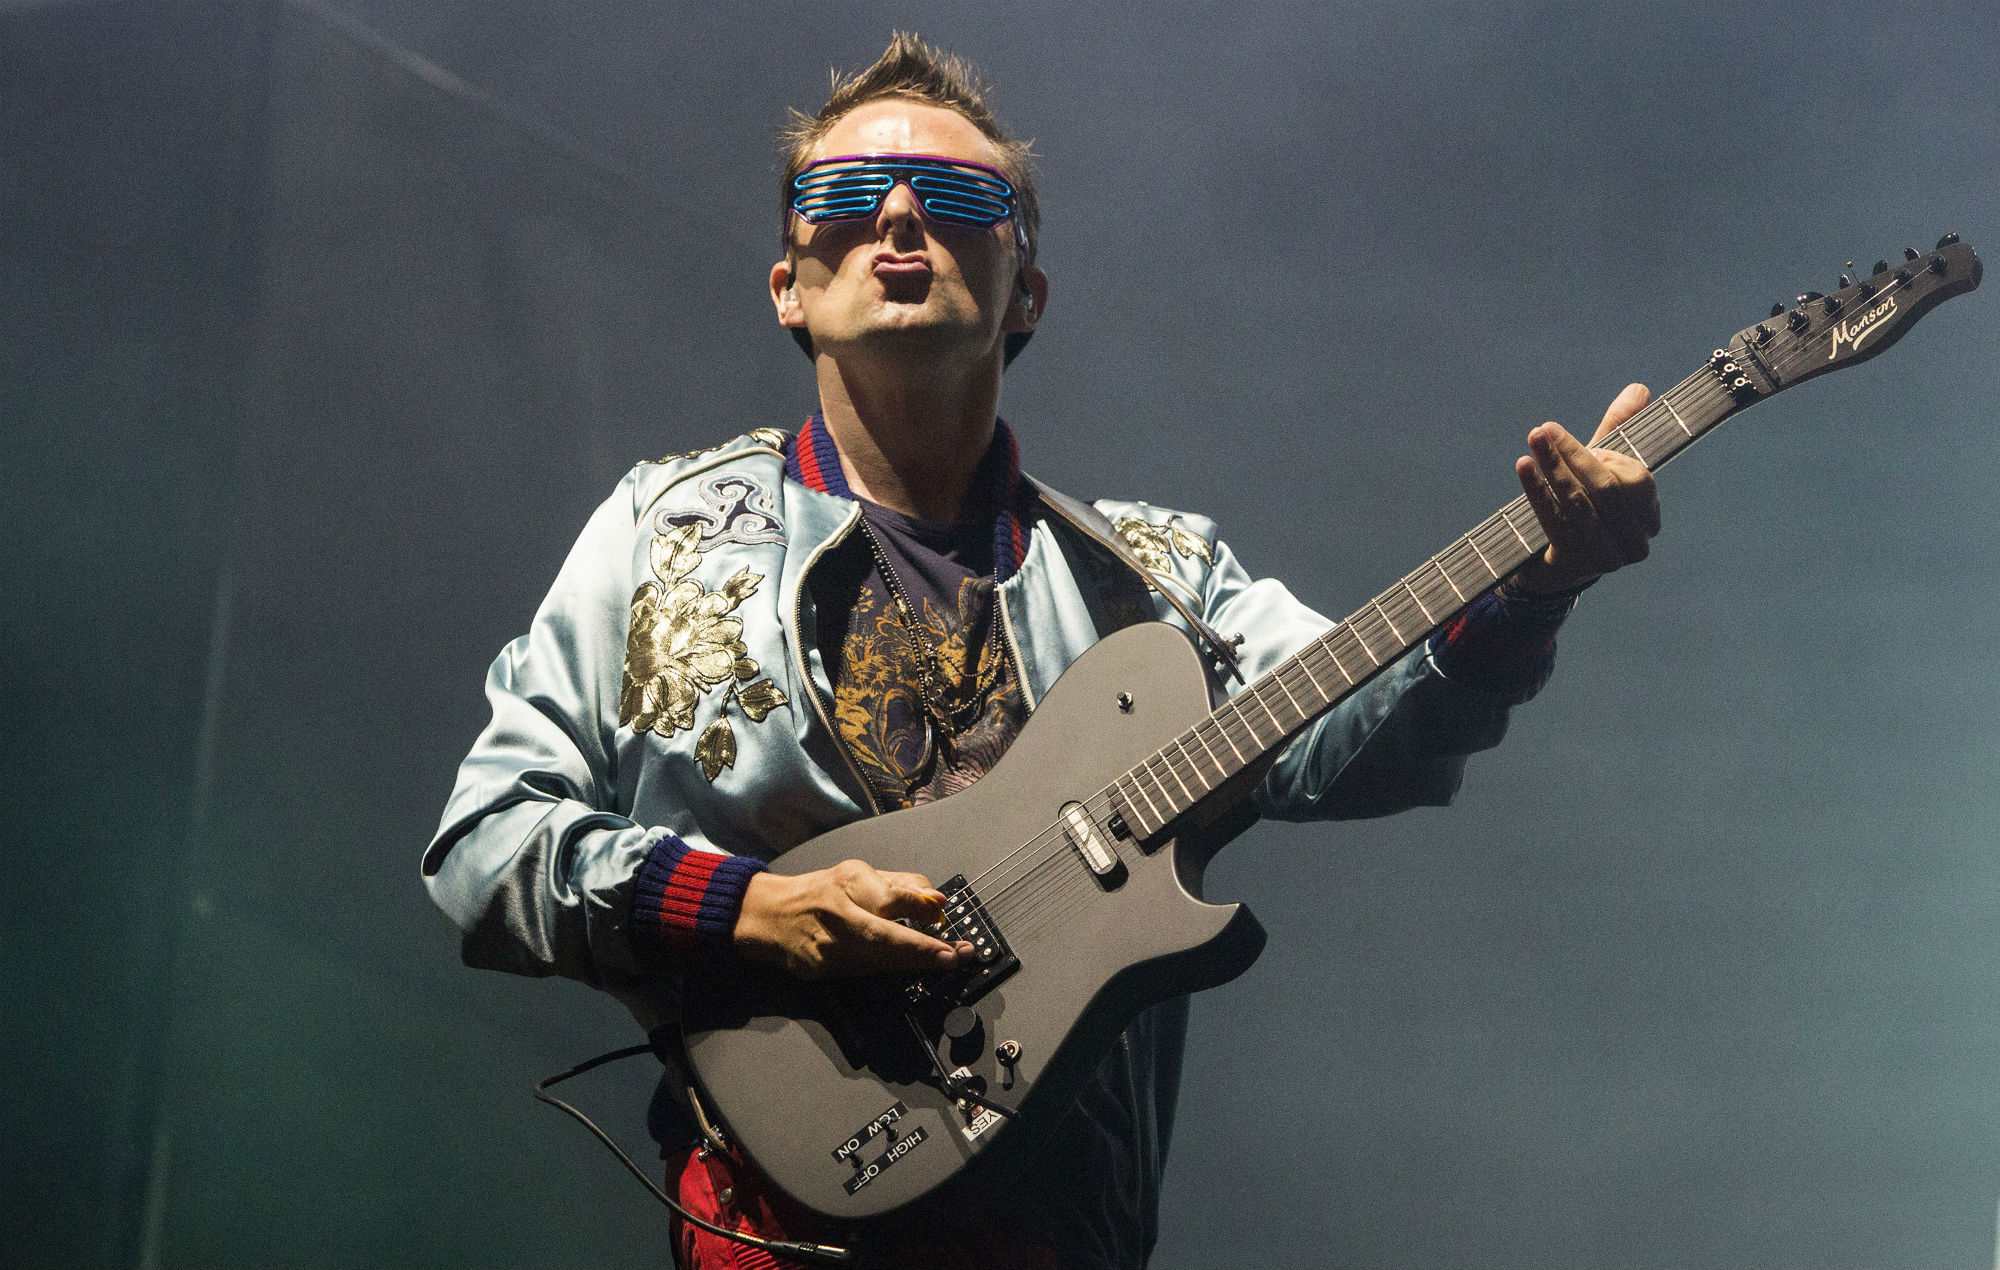 NME Festival blog: Muse will play 'Simulation Theory' tracks live for the first time as surprise guests at Reeperbahn Festival tonight